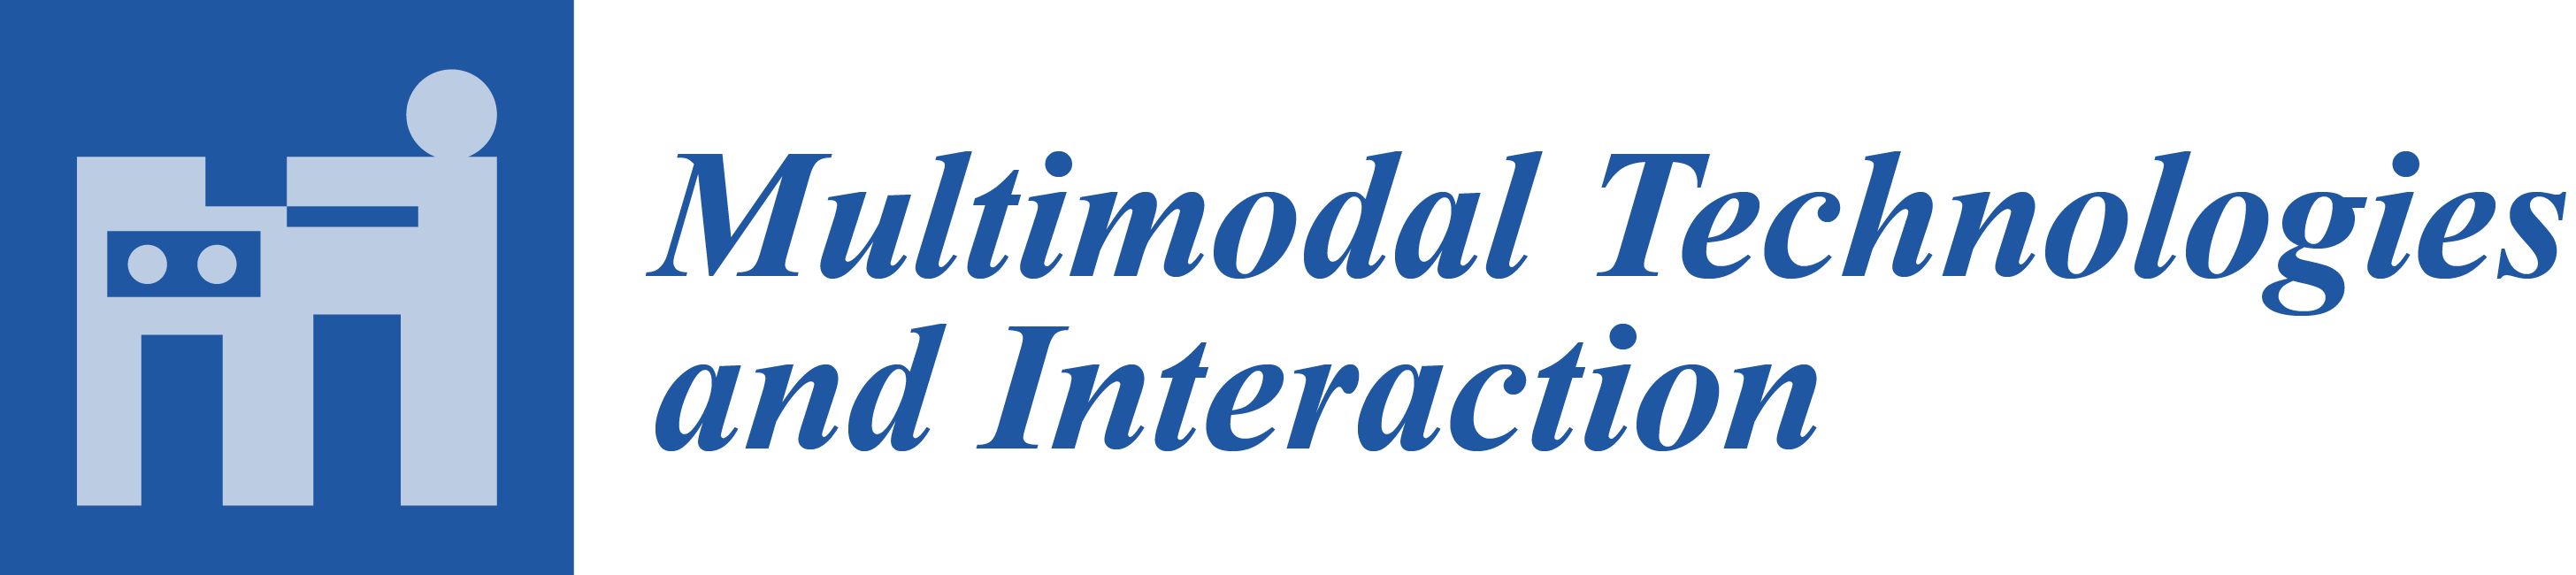 Multimodal Technologies and Interaction